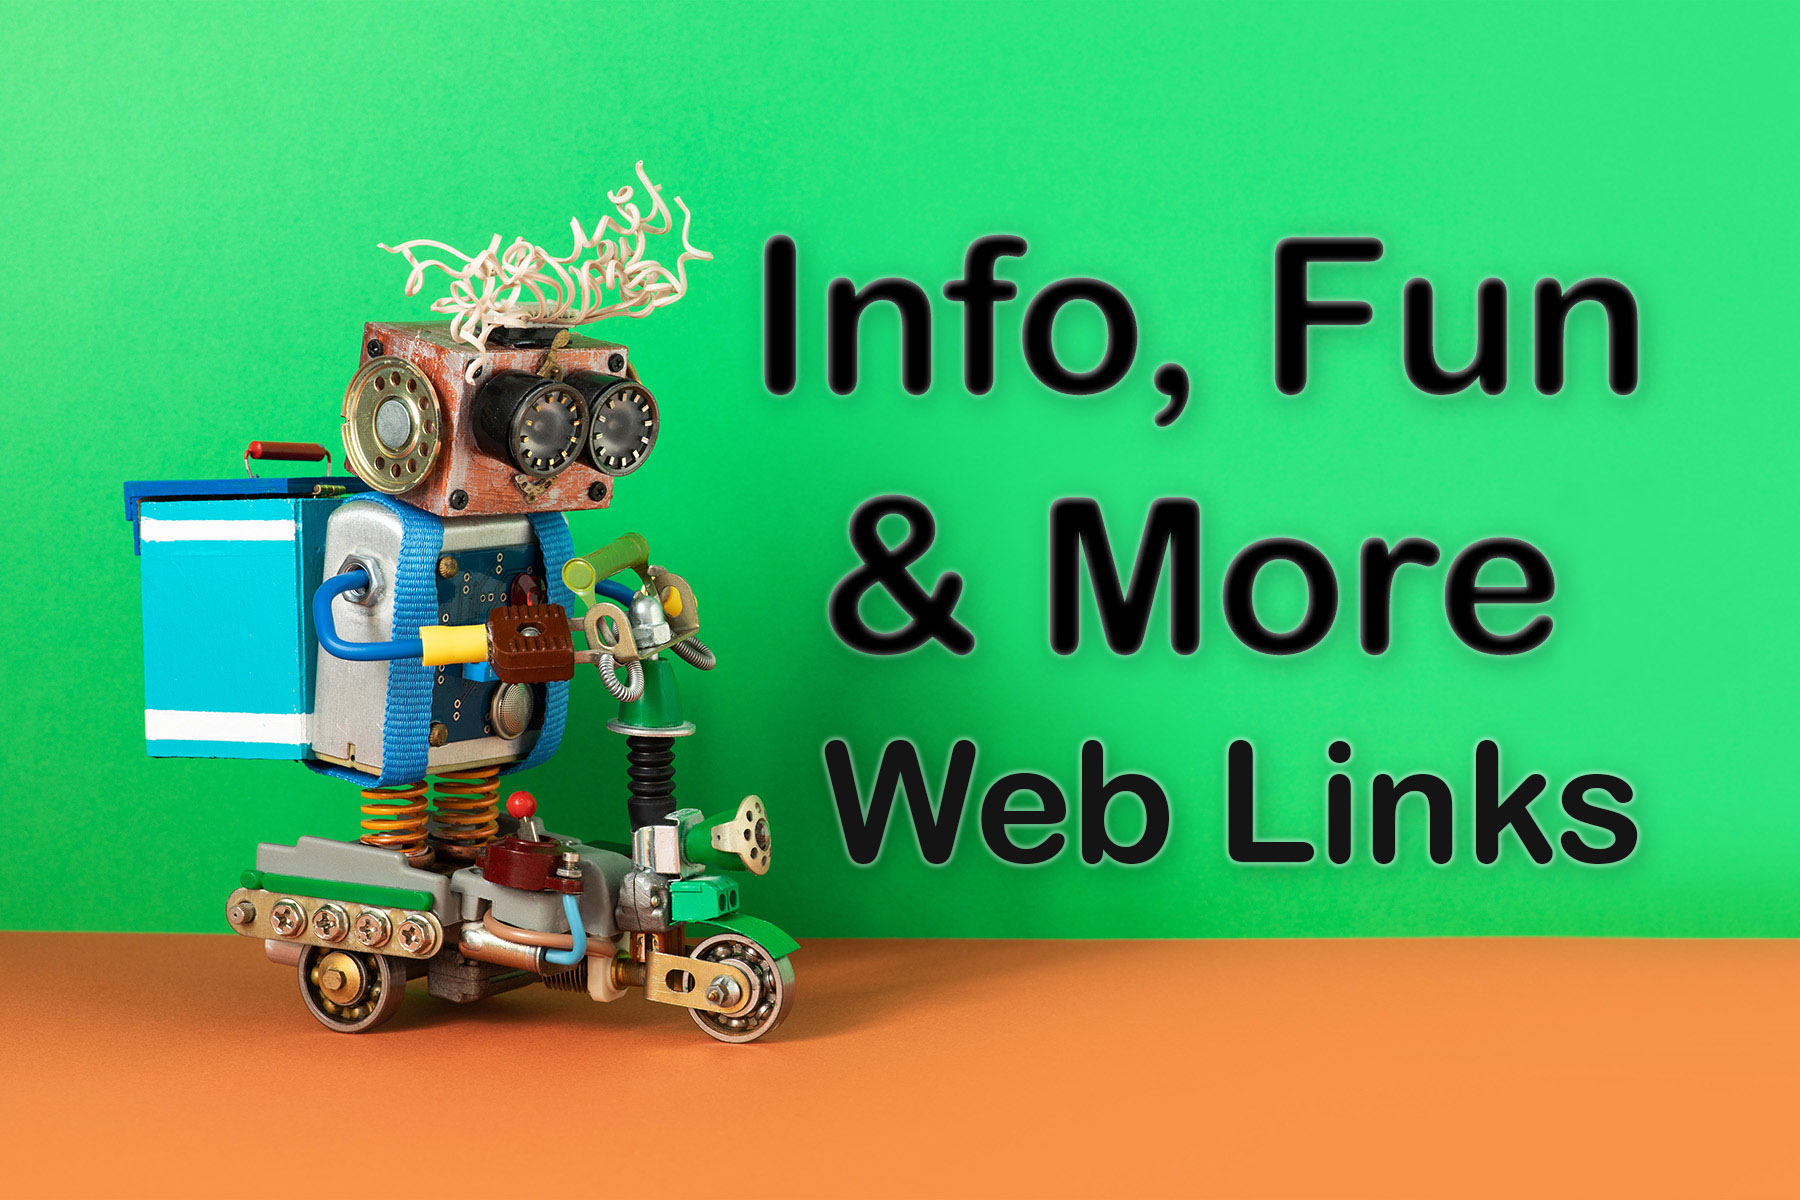 Info, Fun & More Web Links